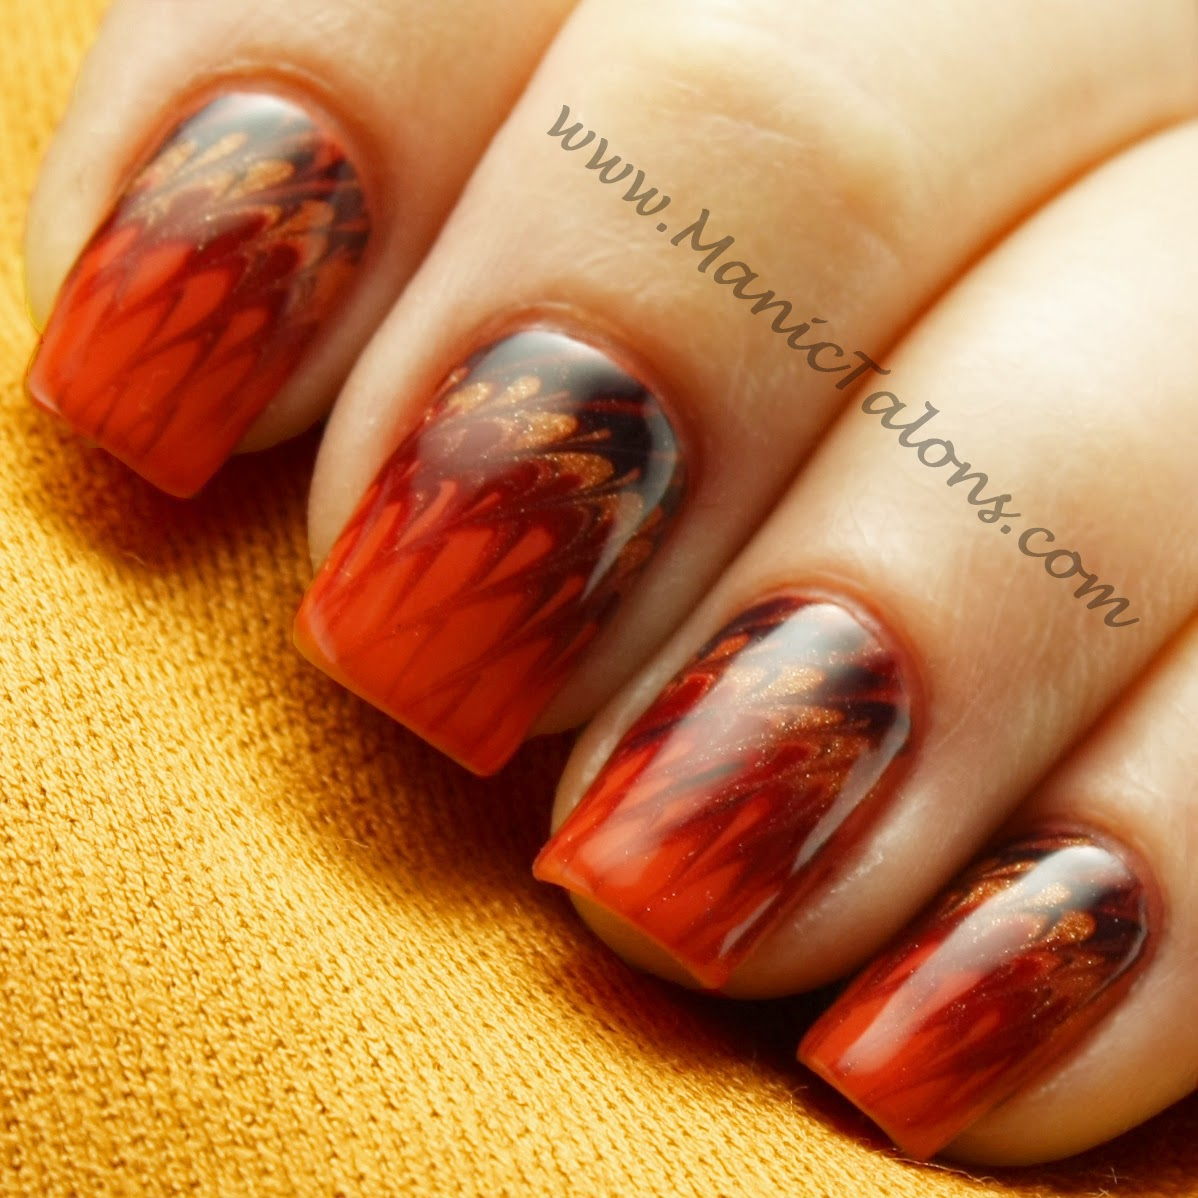 Manic Talons Nail Design: Thanksgiving Needle Drag Nail Art